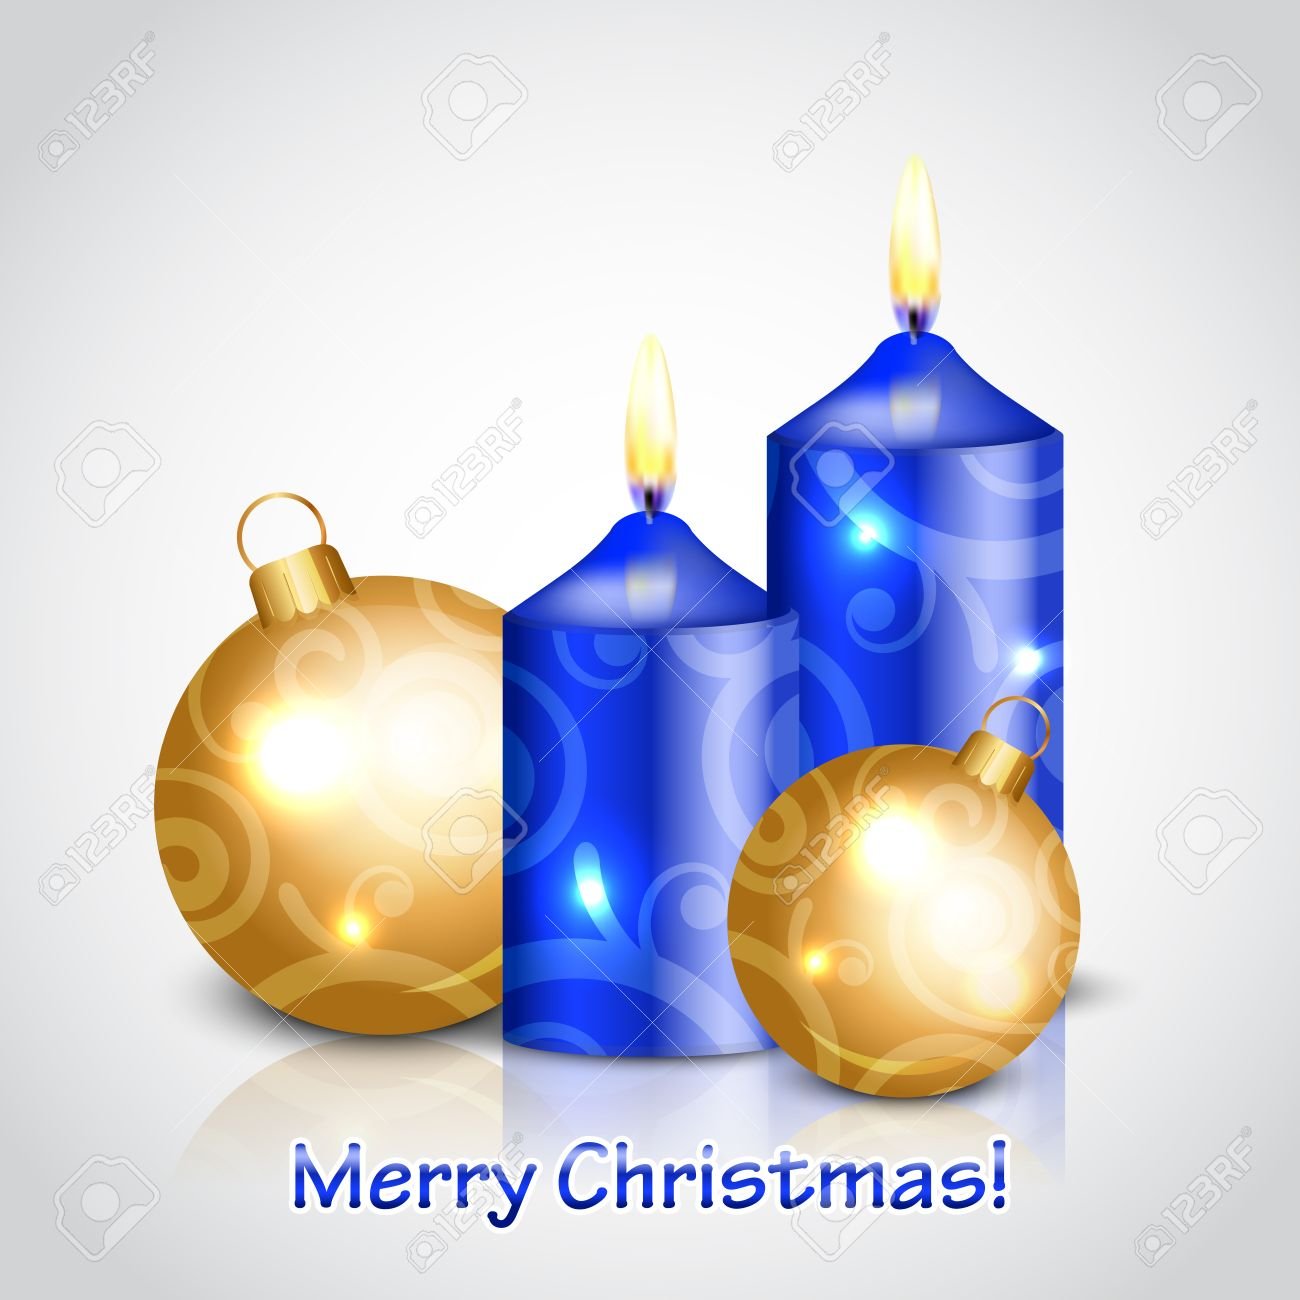 Blue And Gold Christmas Decorations - Vector merry christmas background with candles and gold decorations stock vector 24027474